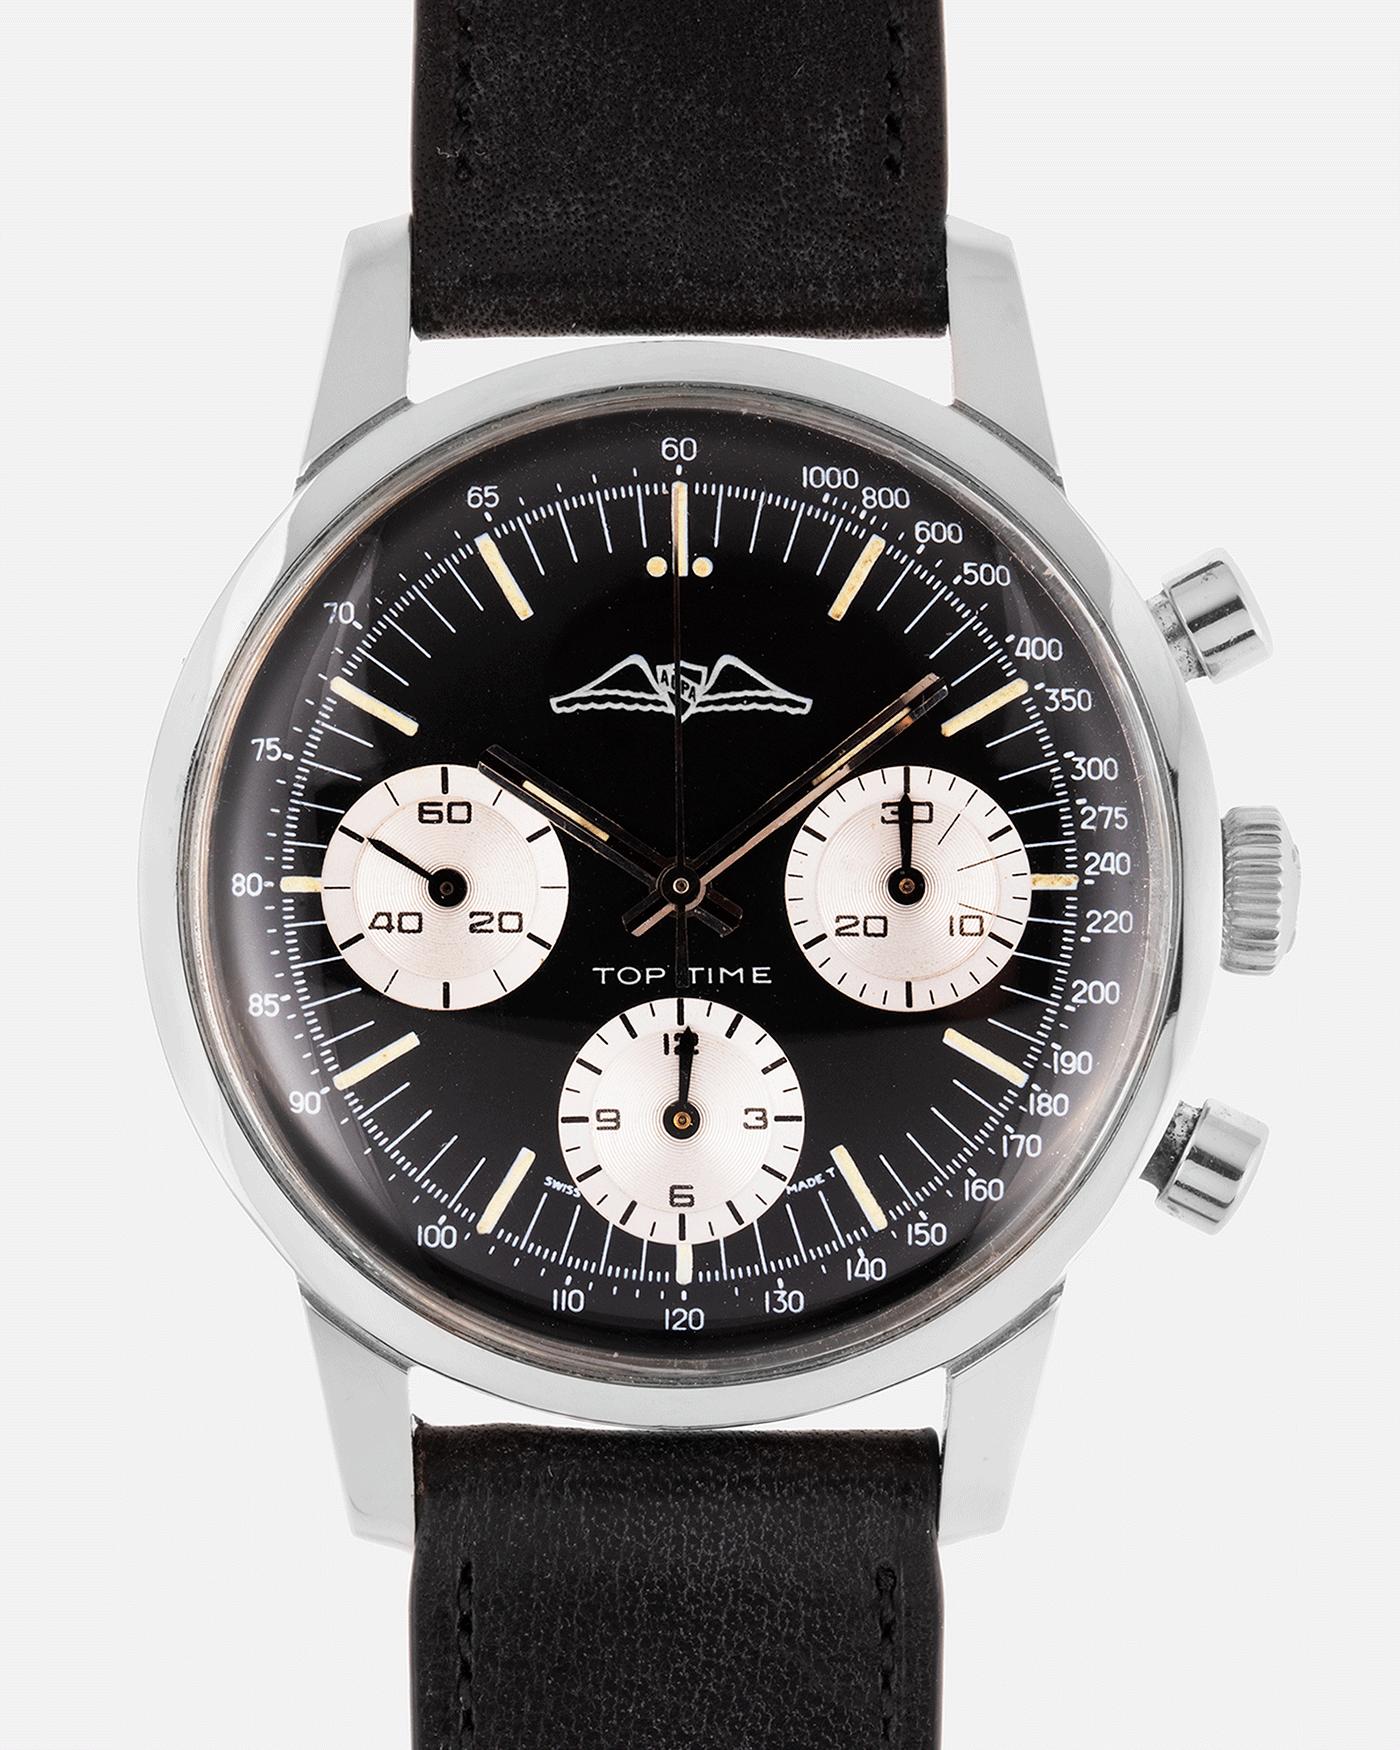 Breitling Top Time Ref. 810 AOPA Vintage Racing Chronograph Watch | S.Song Vintage Watches For Sale